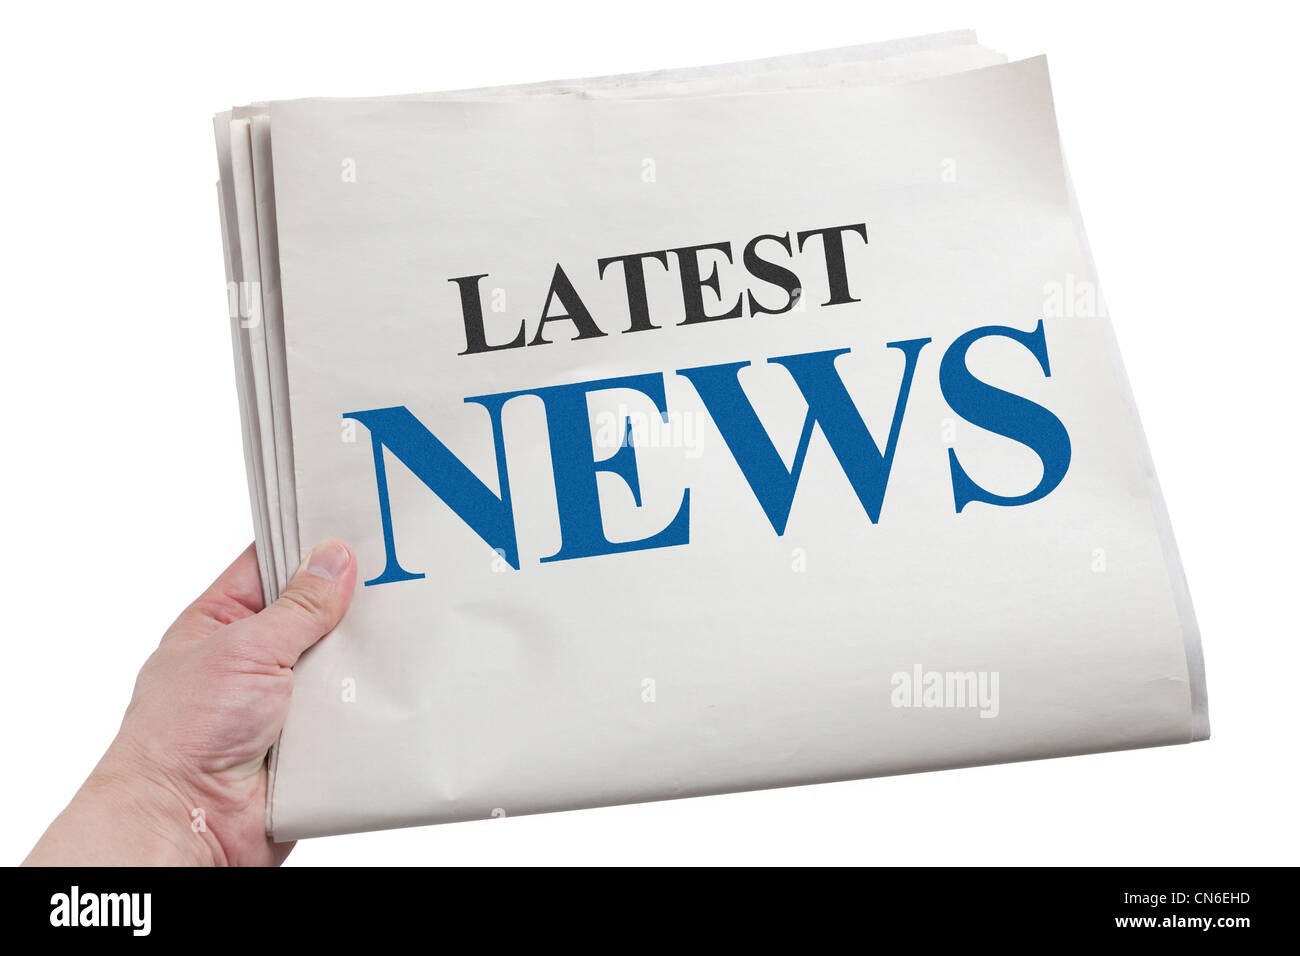 Latest News, Newspaper with white background - Stock Image